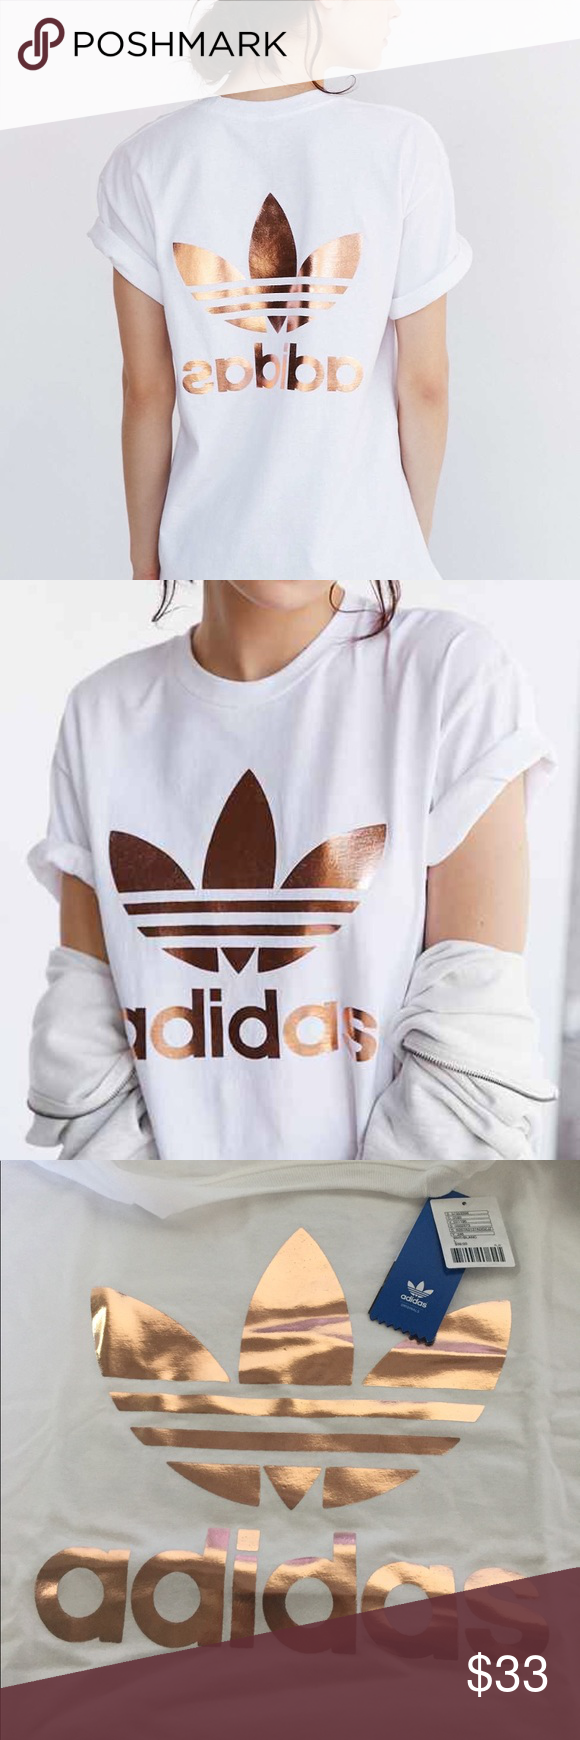 Adidas Originals Rose Gold White Logo Tee T Shirt, Women's